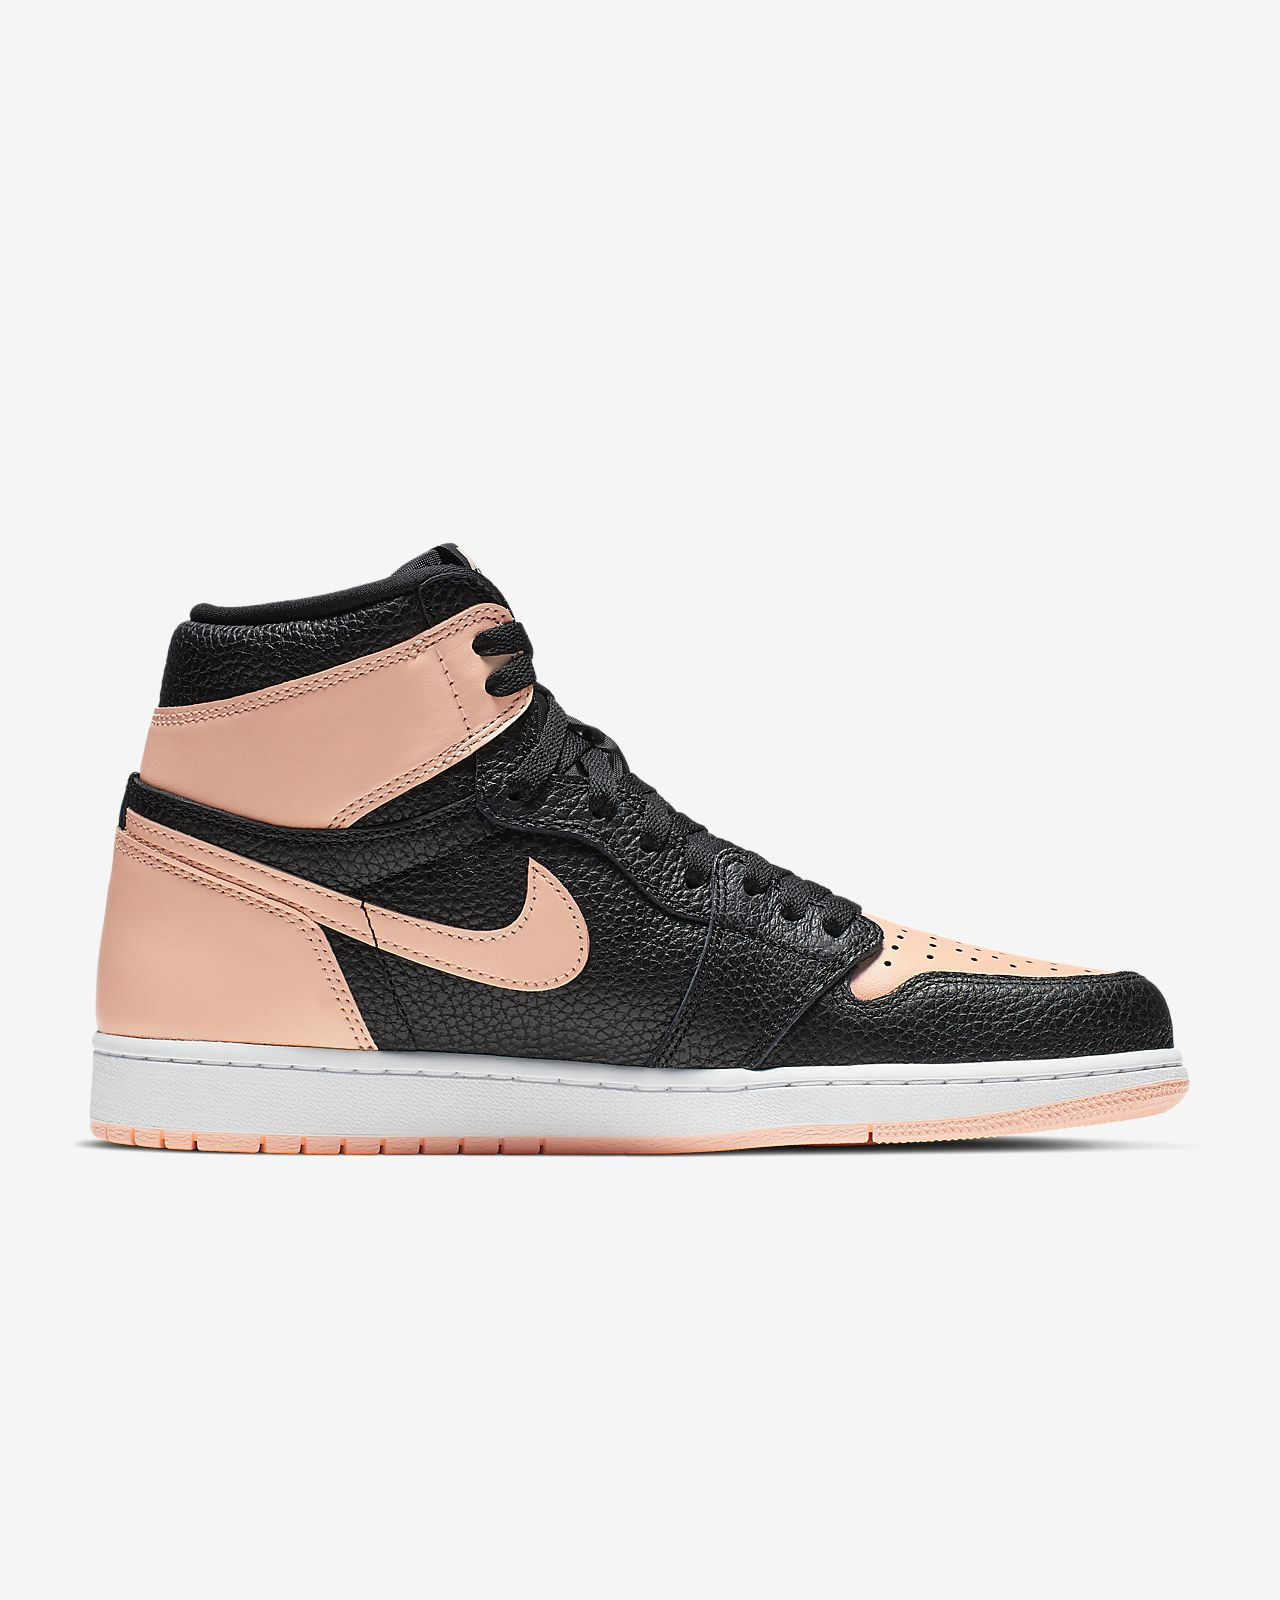 new styles 95dfa 3da58 ... Air Jordan 1 Retro High OG Shoe